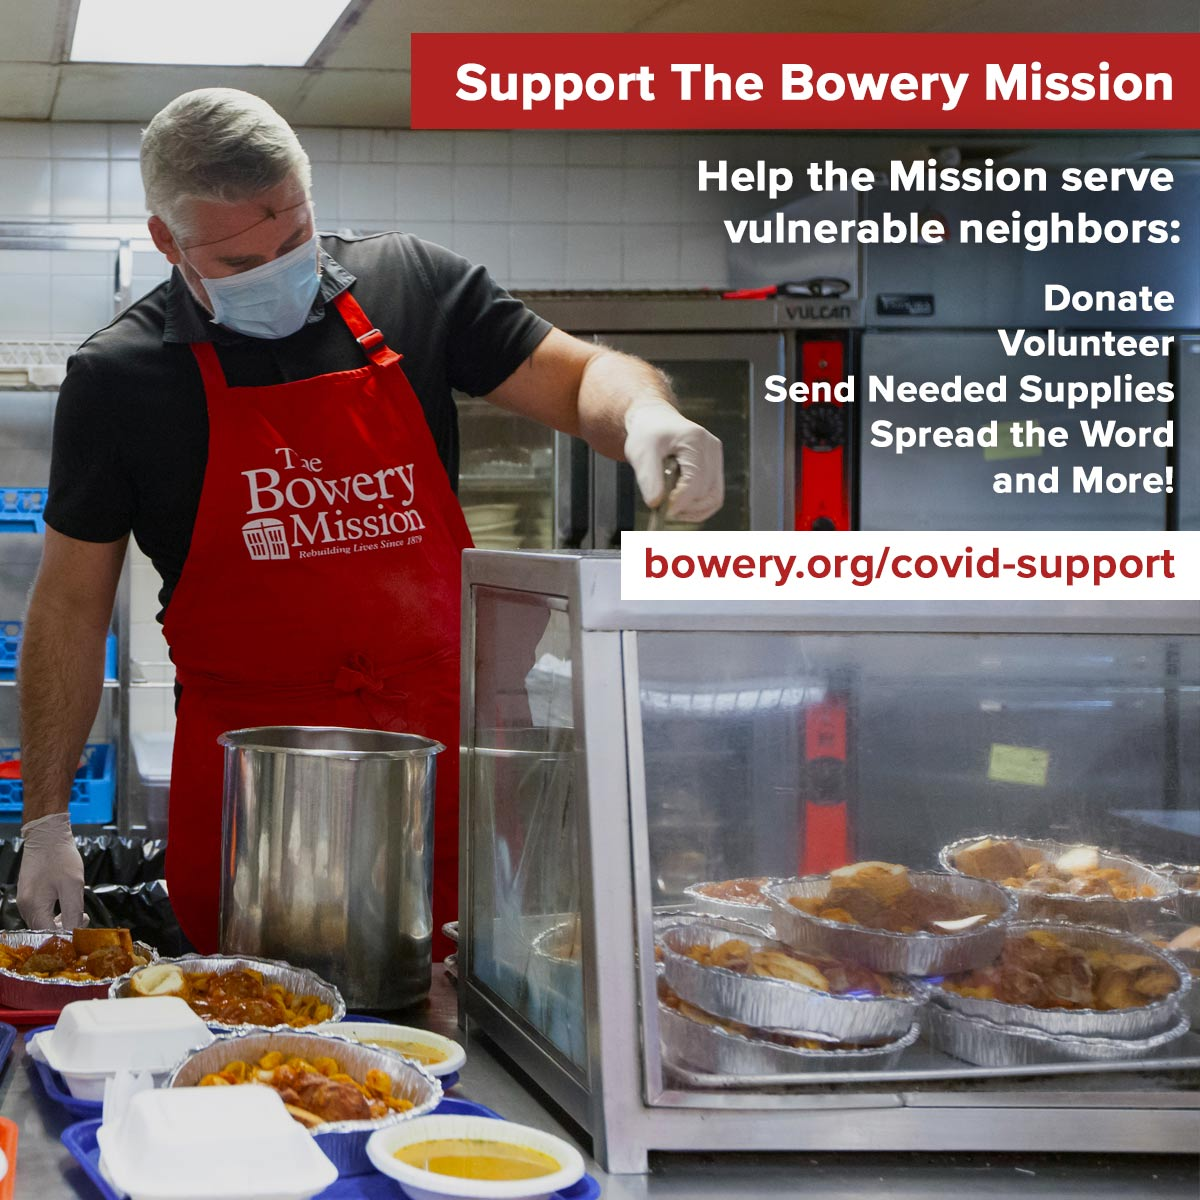 Support The Bowery Mission